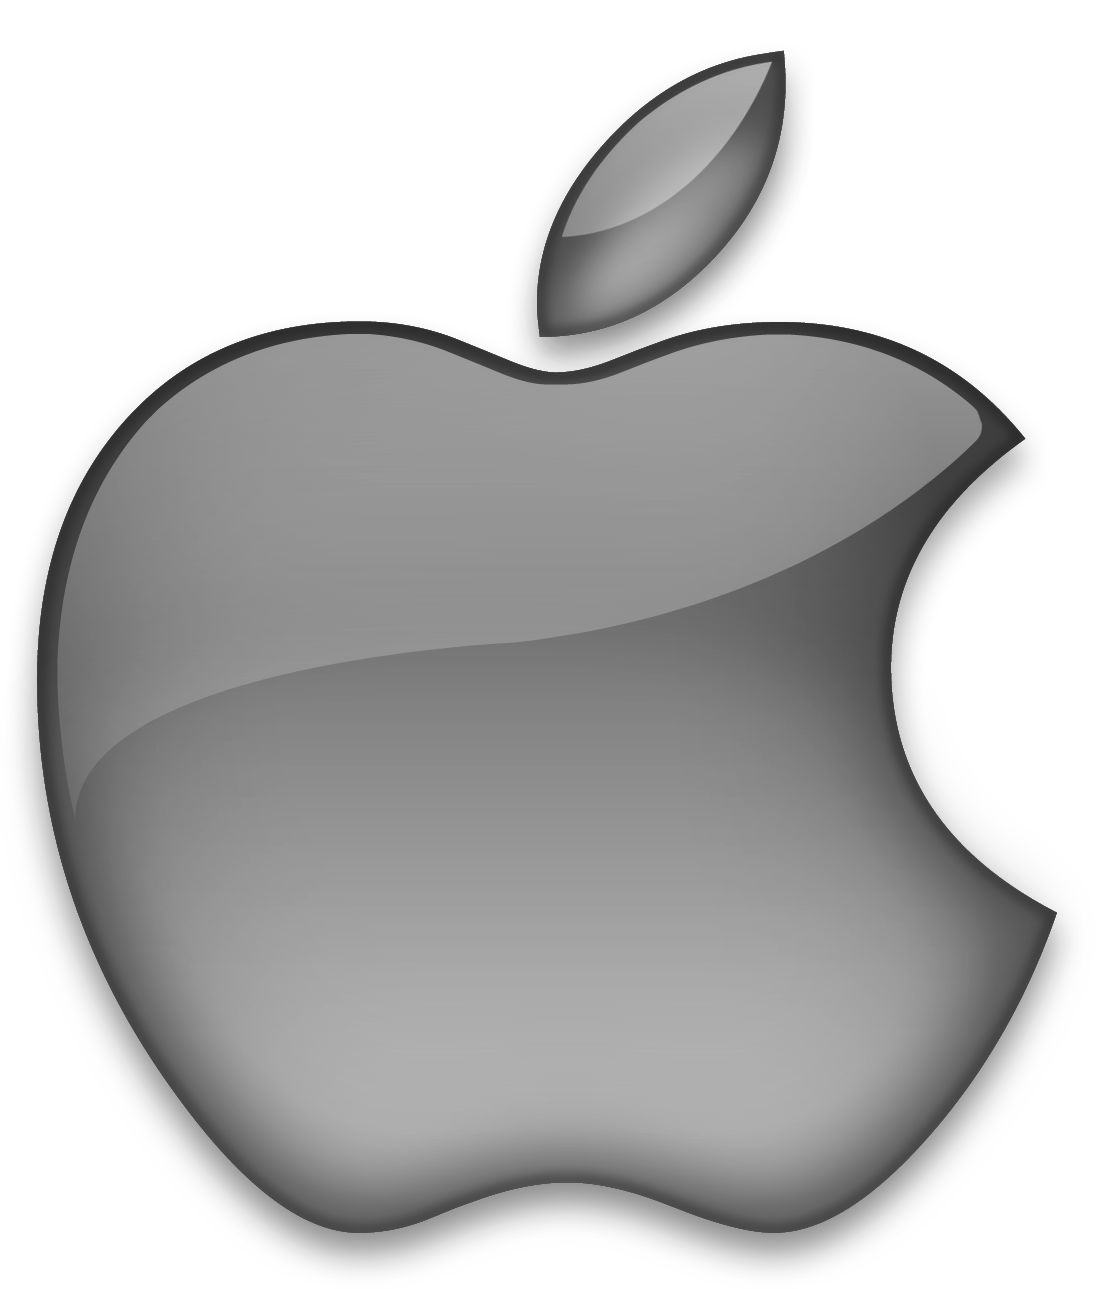 Funny wallpapers apple logo apple first logo apple logo apple logo evolution origin of apple logo apples logo apple logo vector apple computers logo apple logos apple logo jobs type apple logo biocorpaavc Gallery